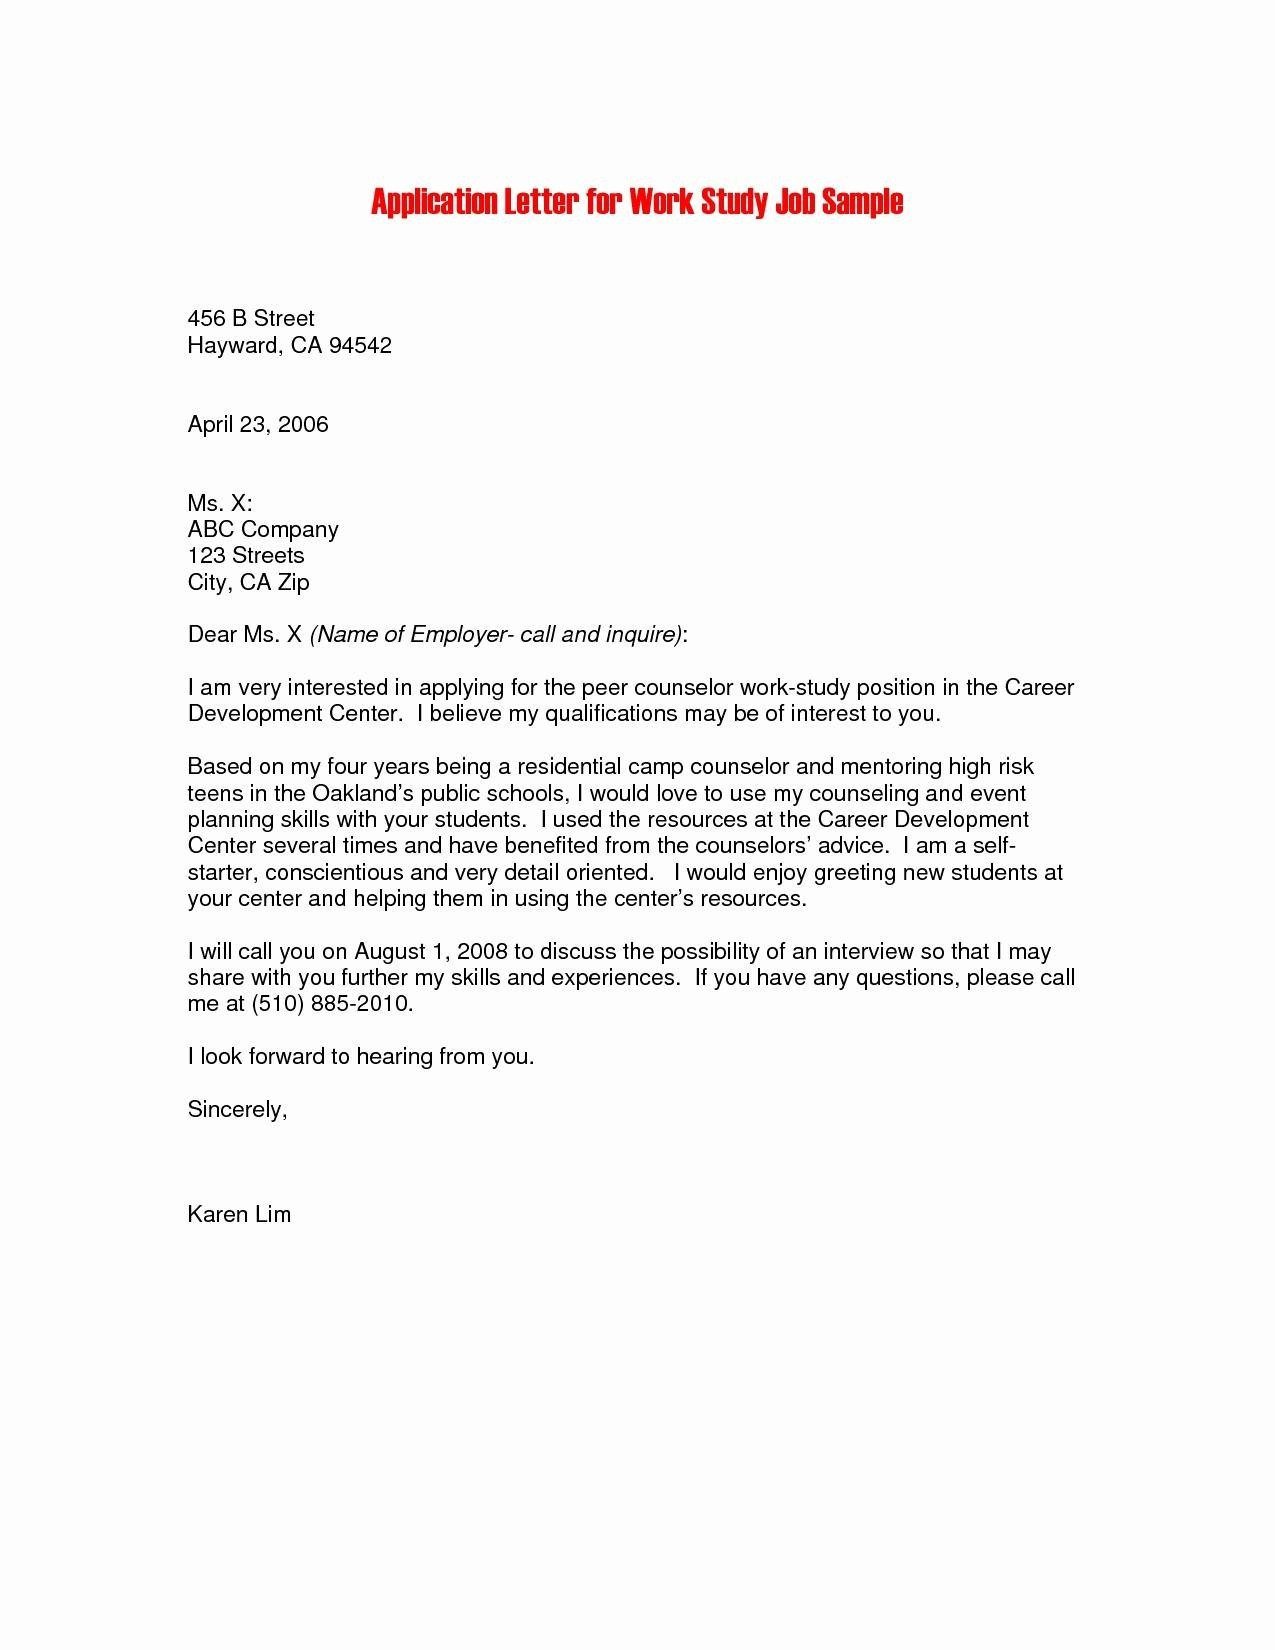 Magnetic Letter Template - Impressive Cover Letter Examples for Job